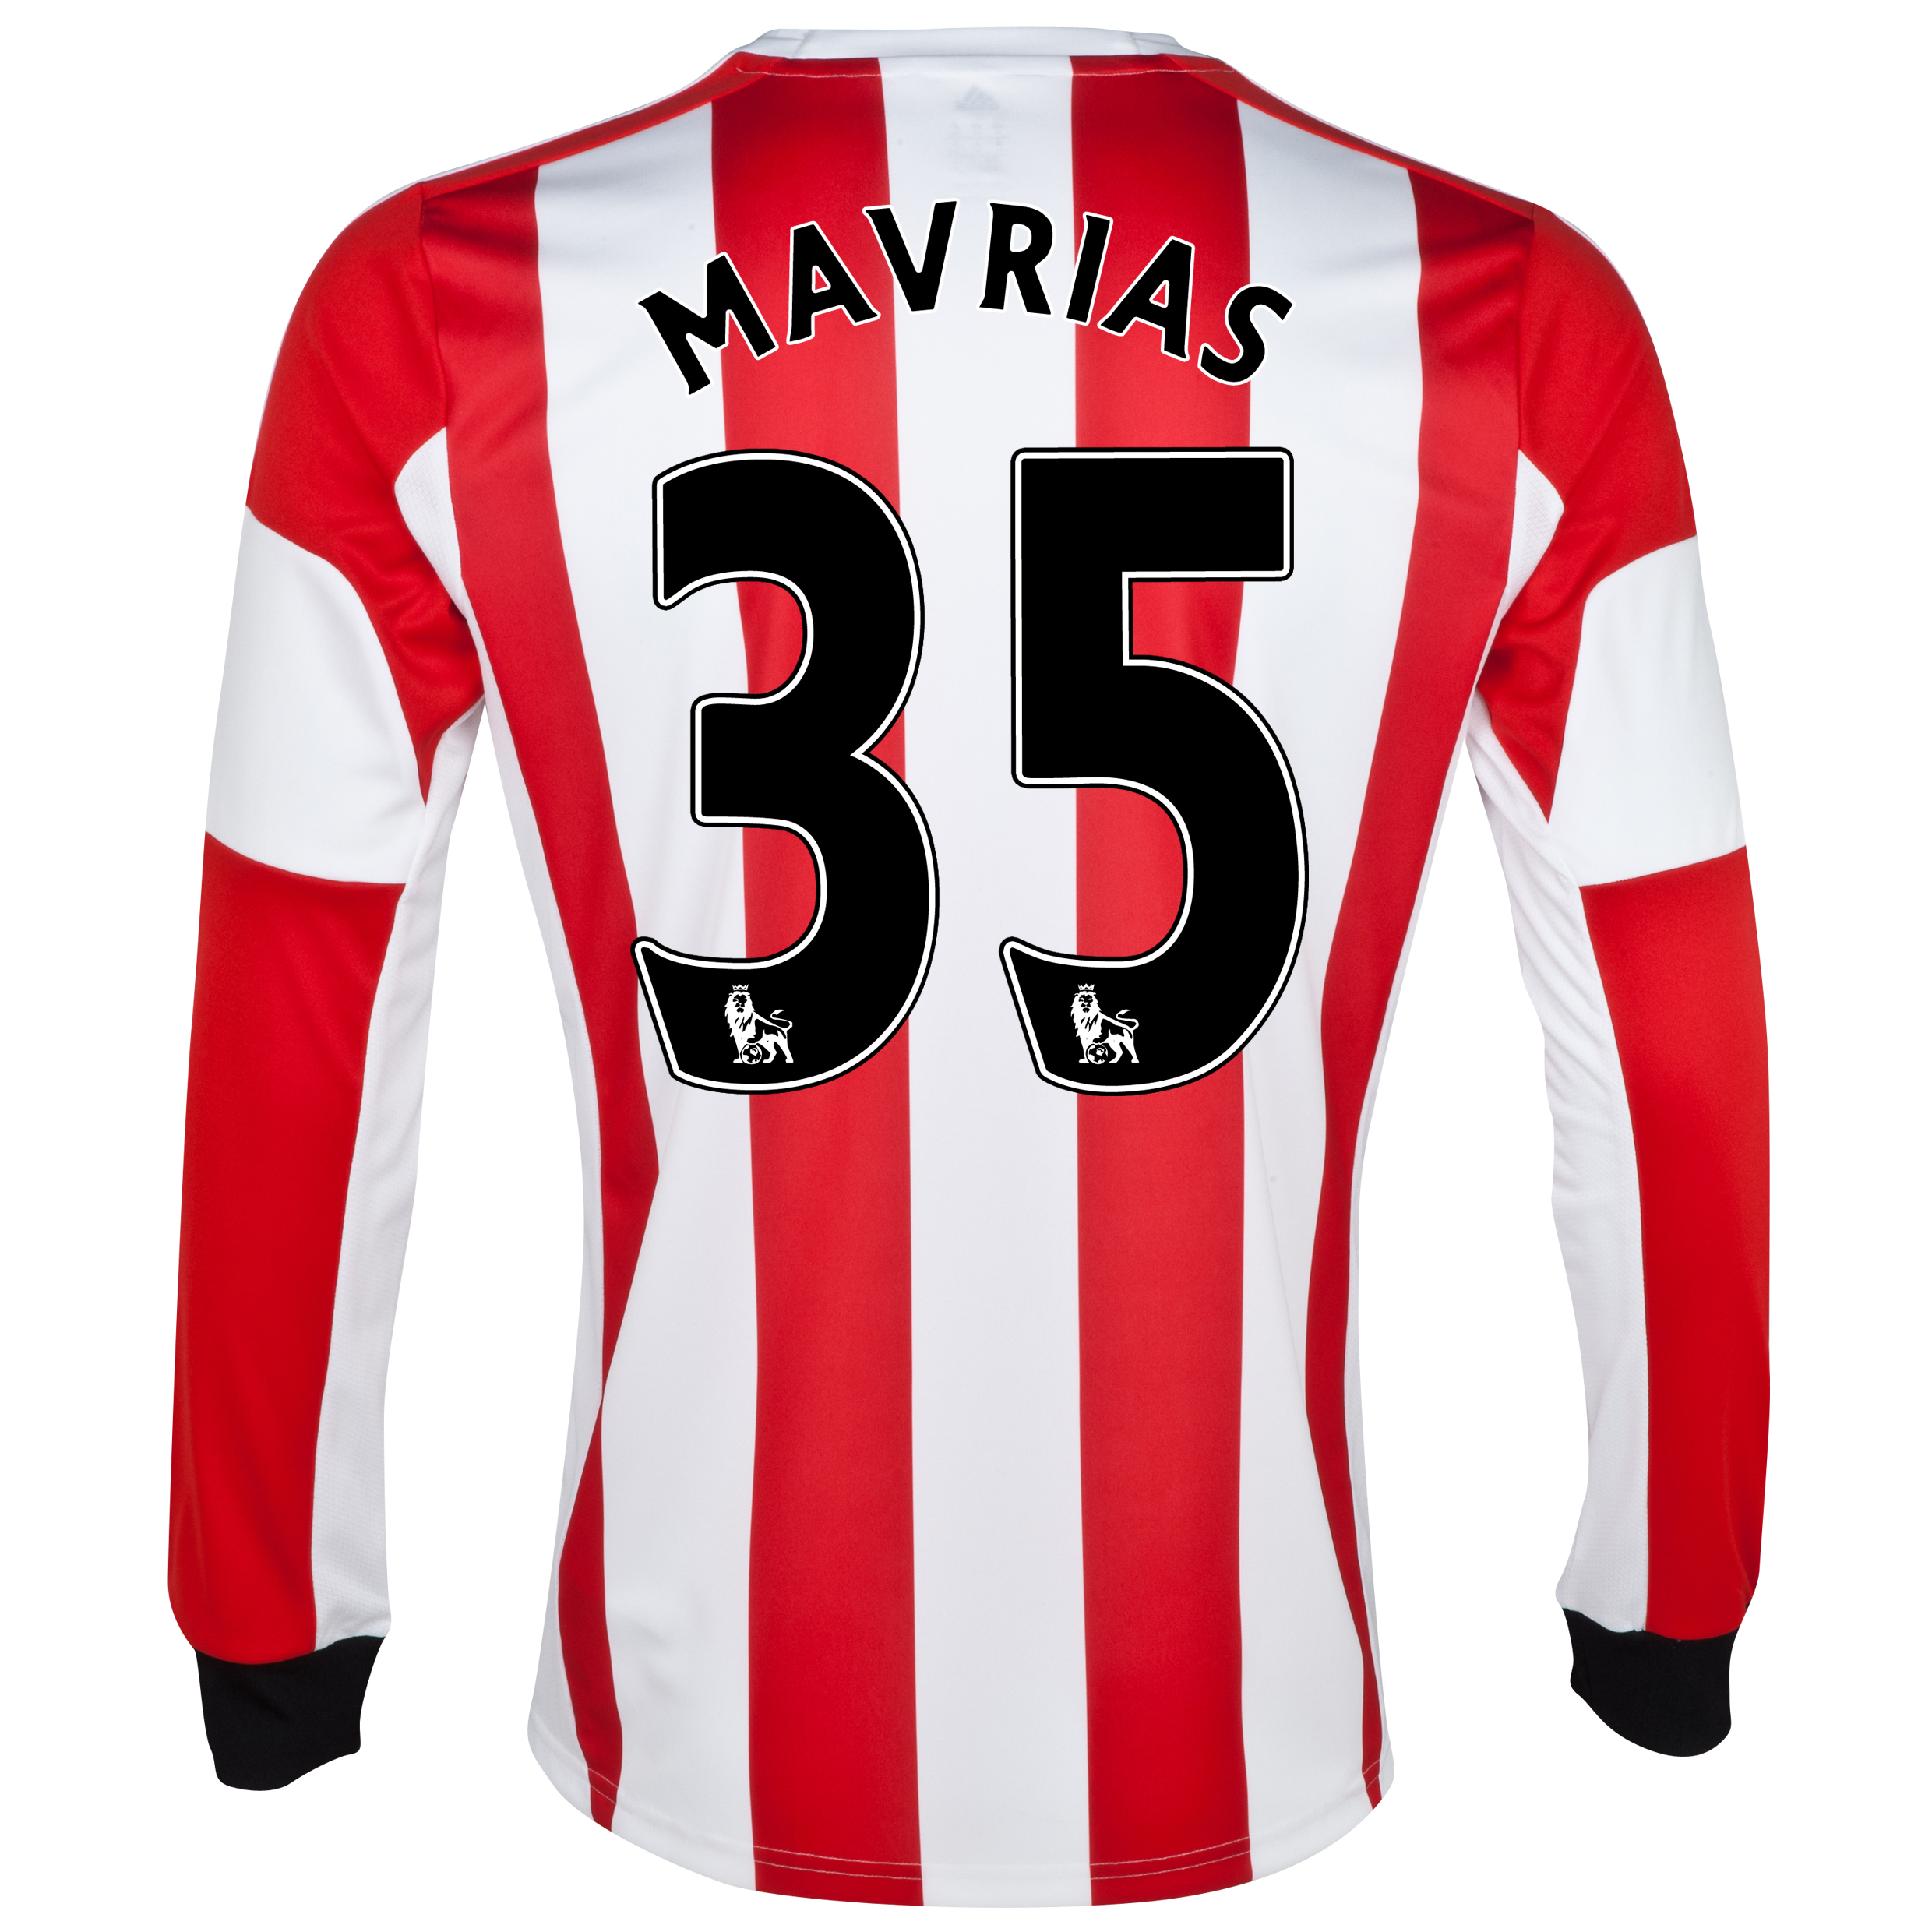 Sunderland Home Shirt 2013/14 - Long Sleeved with Mavrias 35 printing